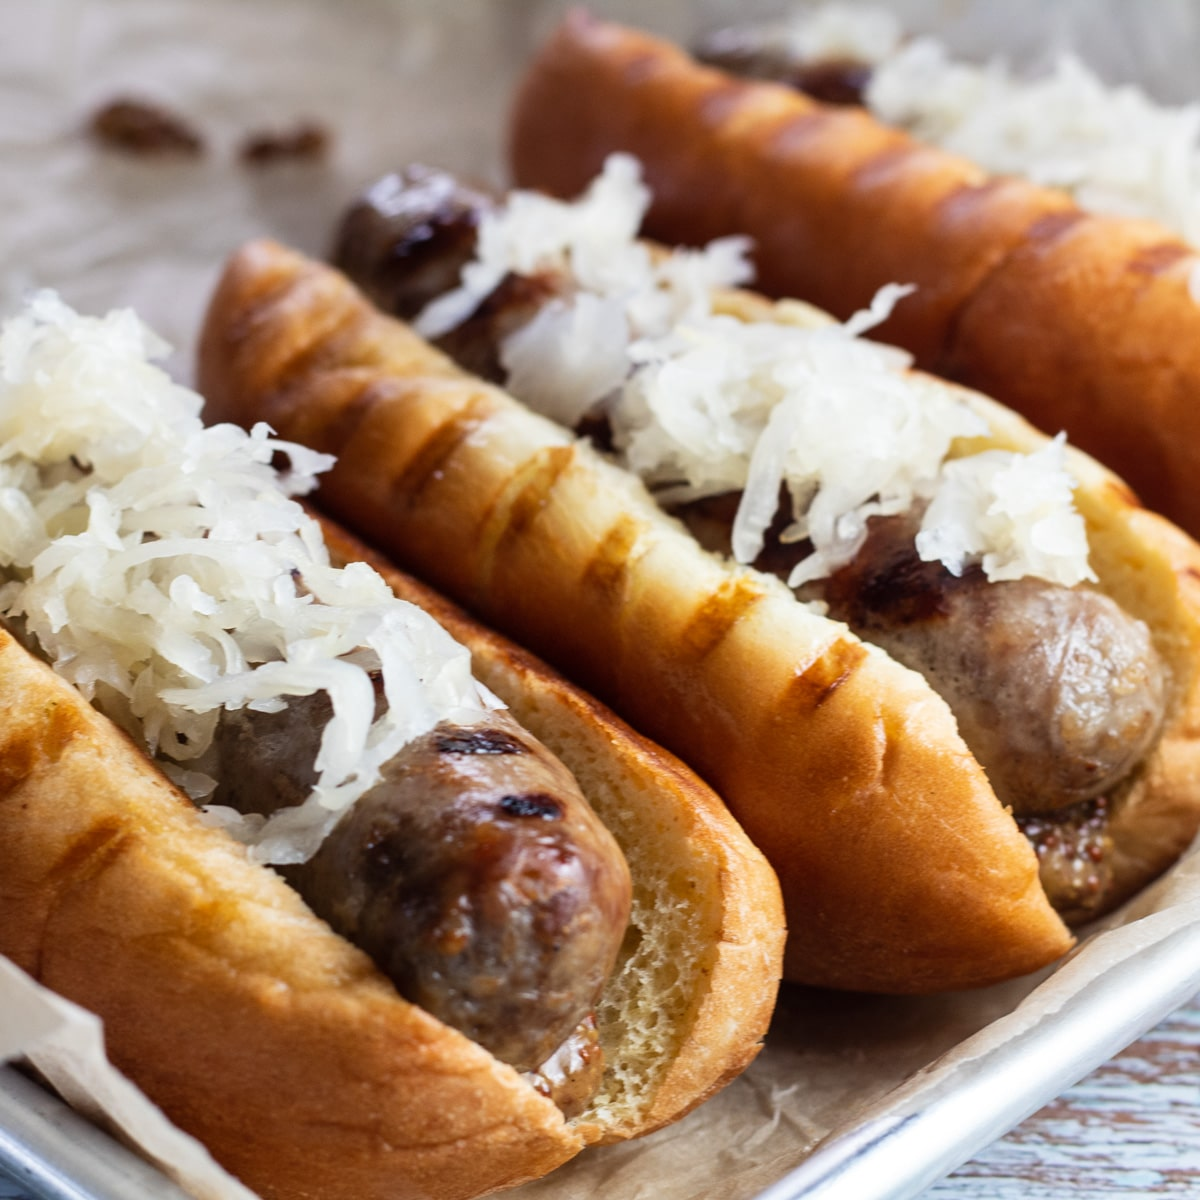 Grilled brats served on tray with German mustard and sauerkraut.